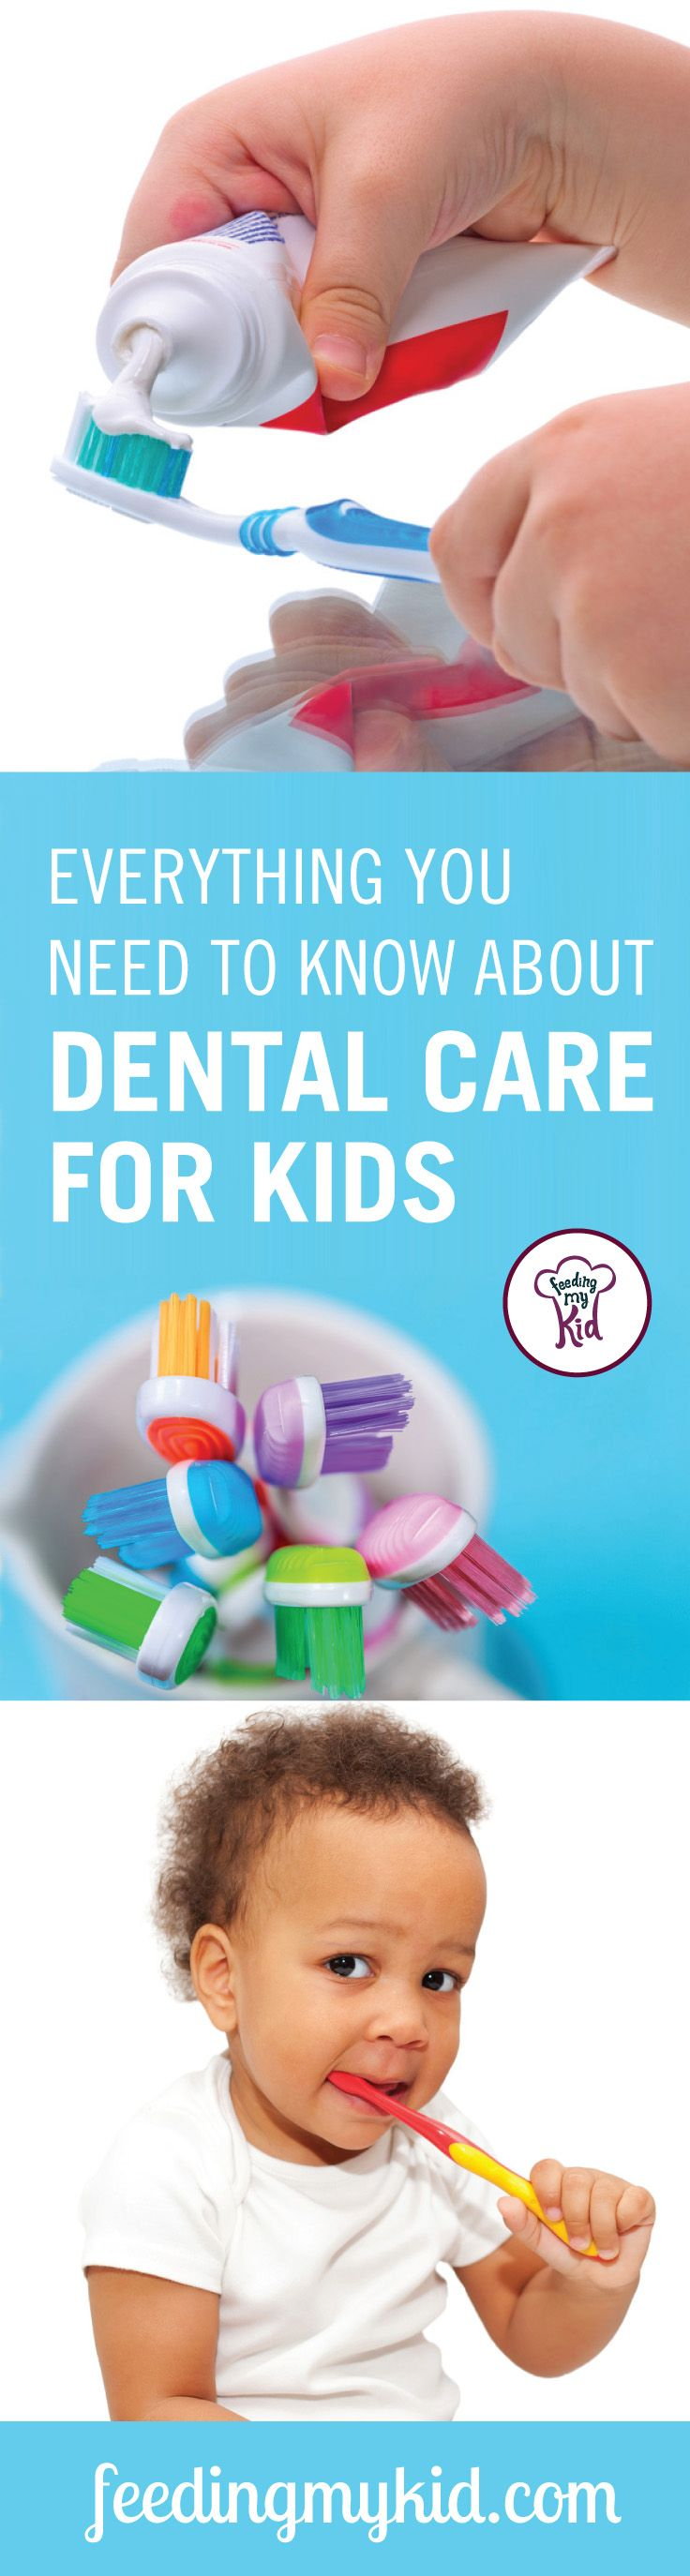 Check out this article about everything you need to know about dental care for kids. This kids dental care article will help you know just when to brush your kid's teeth. Feeding My Kid is a website for parents, filled with all the information you need about how to raise your kids, from healthy tips to nutritious recipes. #dental #toothbrush #tips